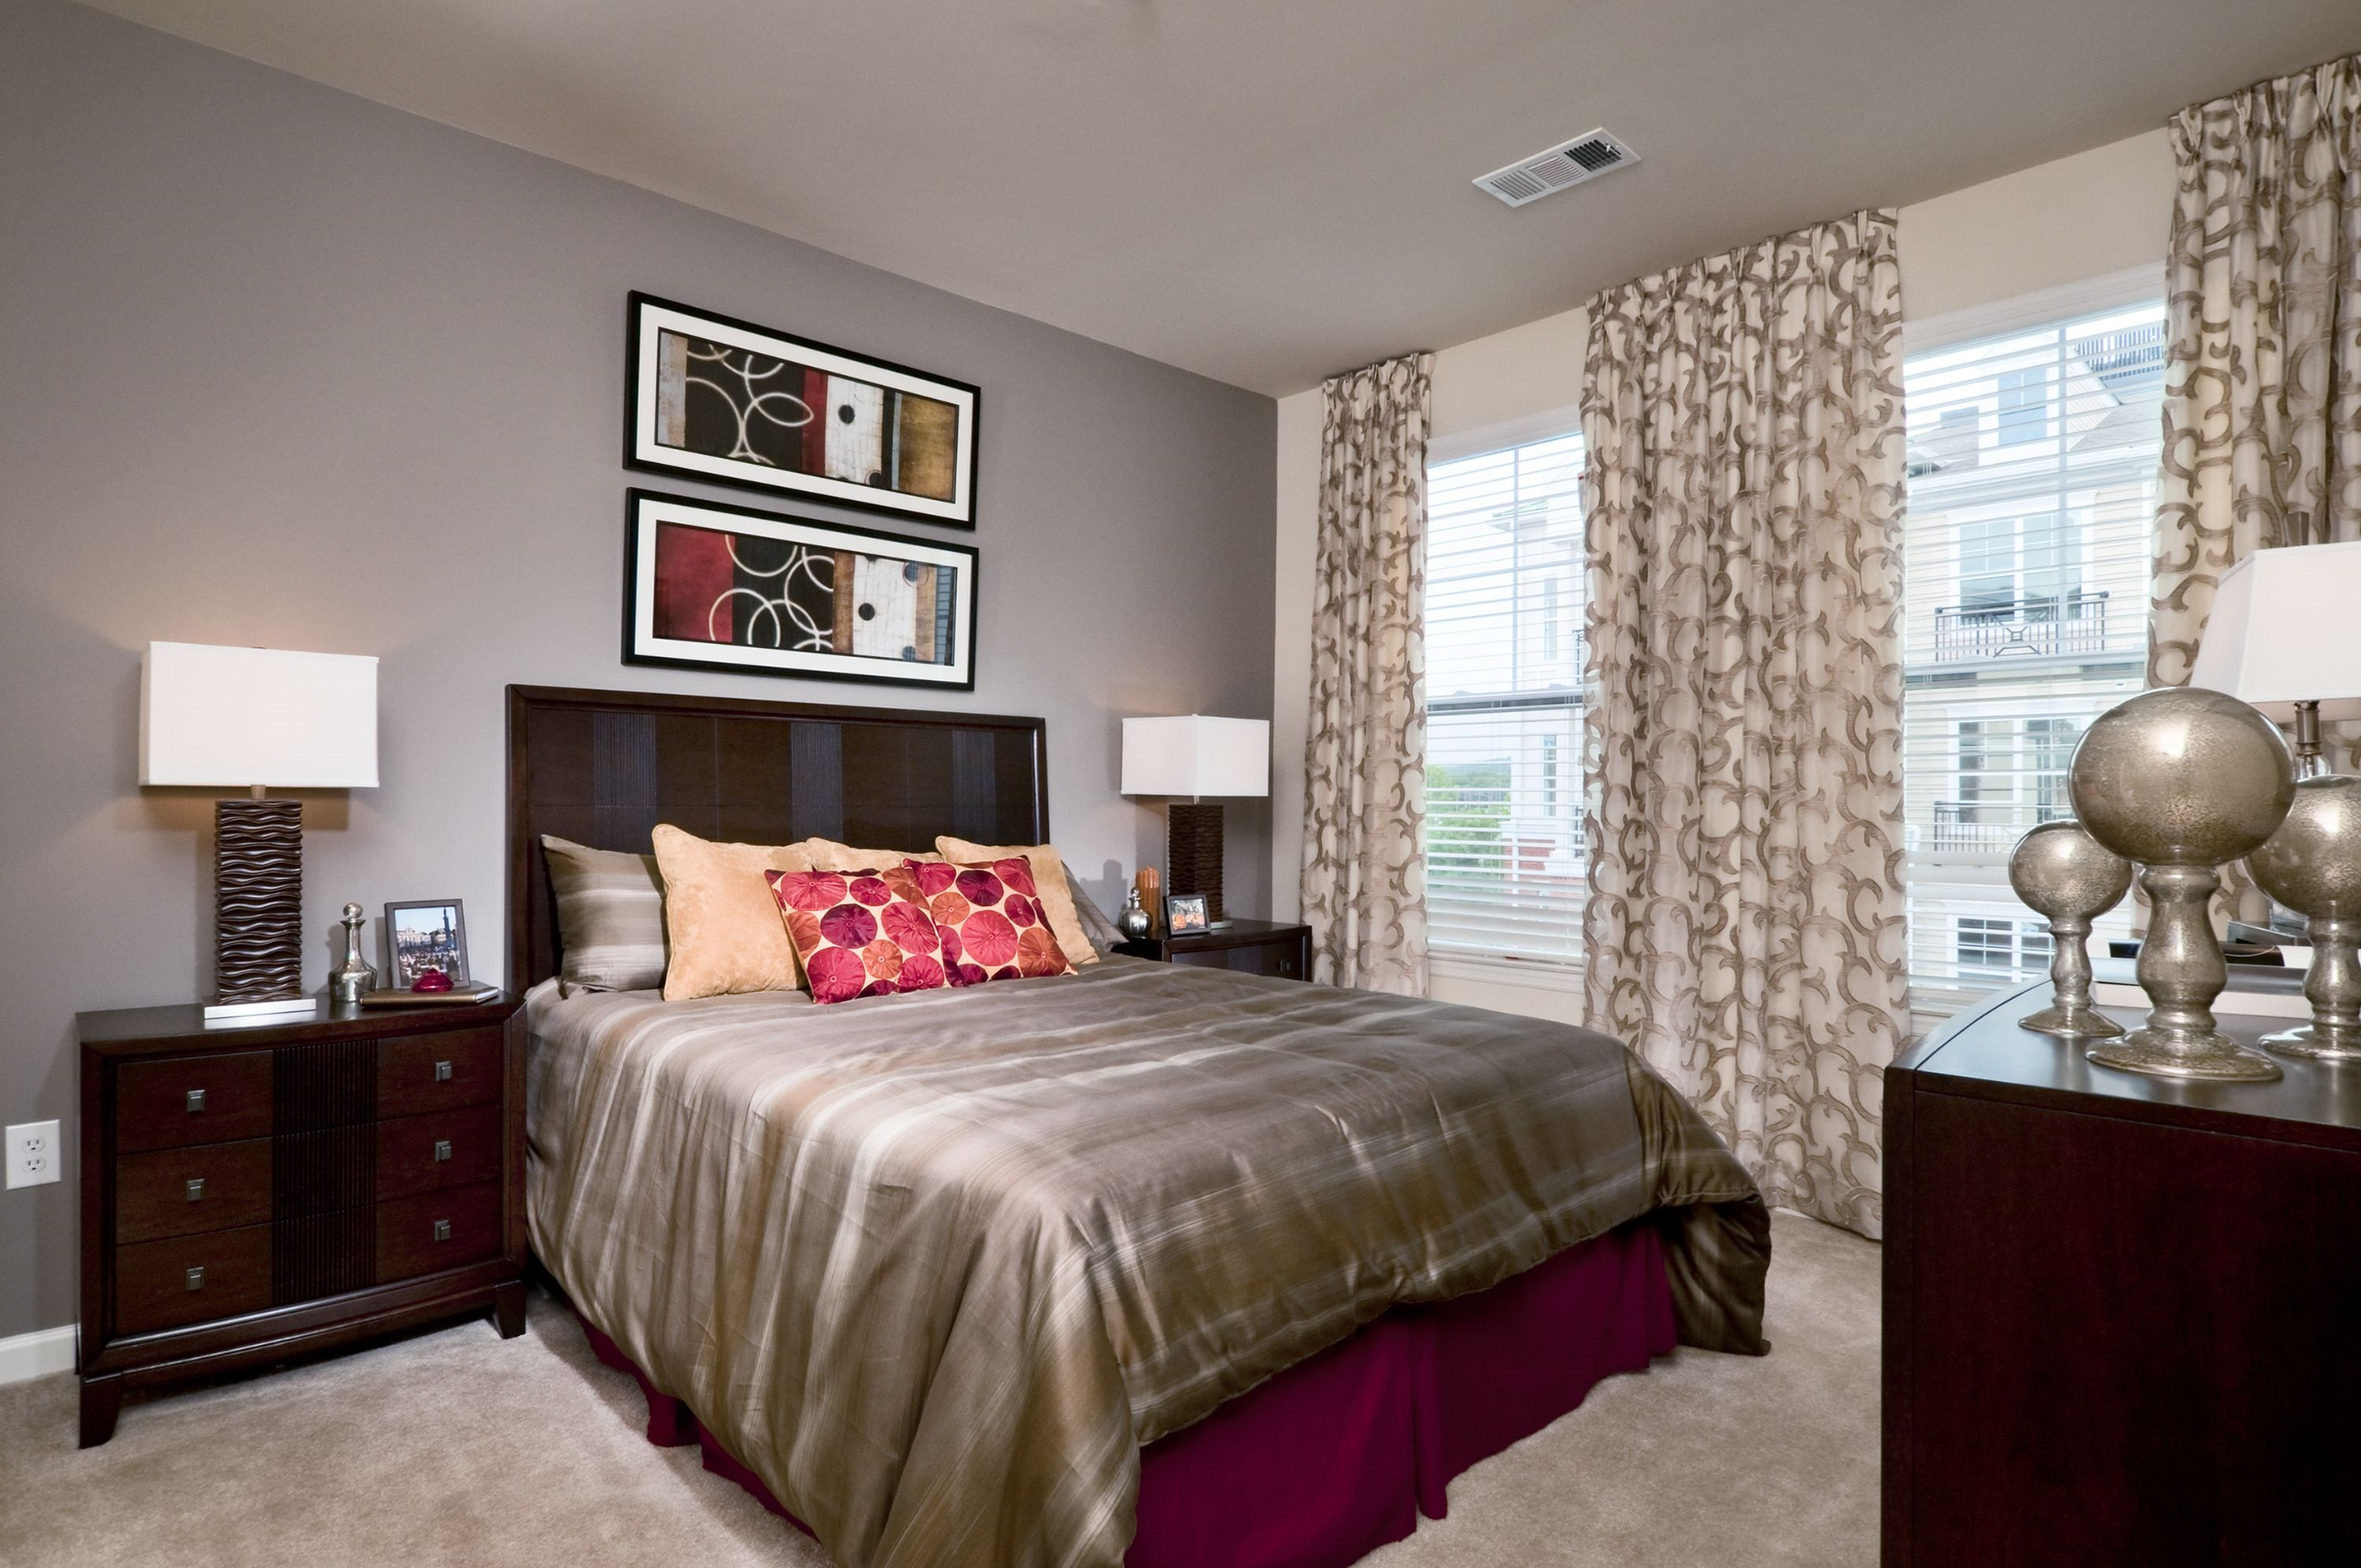 Bedroom at The Reserve at Riverdale Apartments in Riverdale, NJ